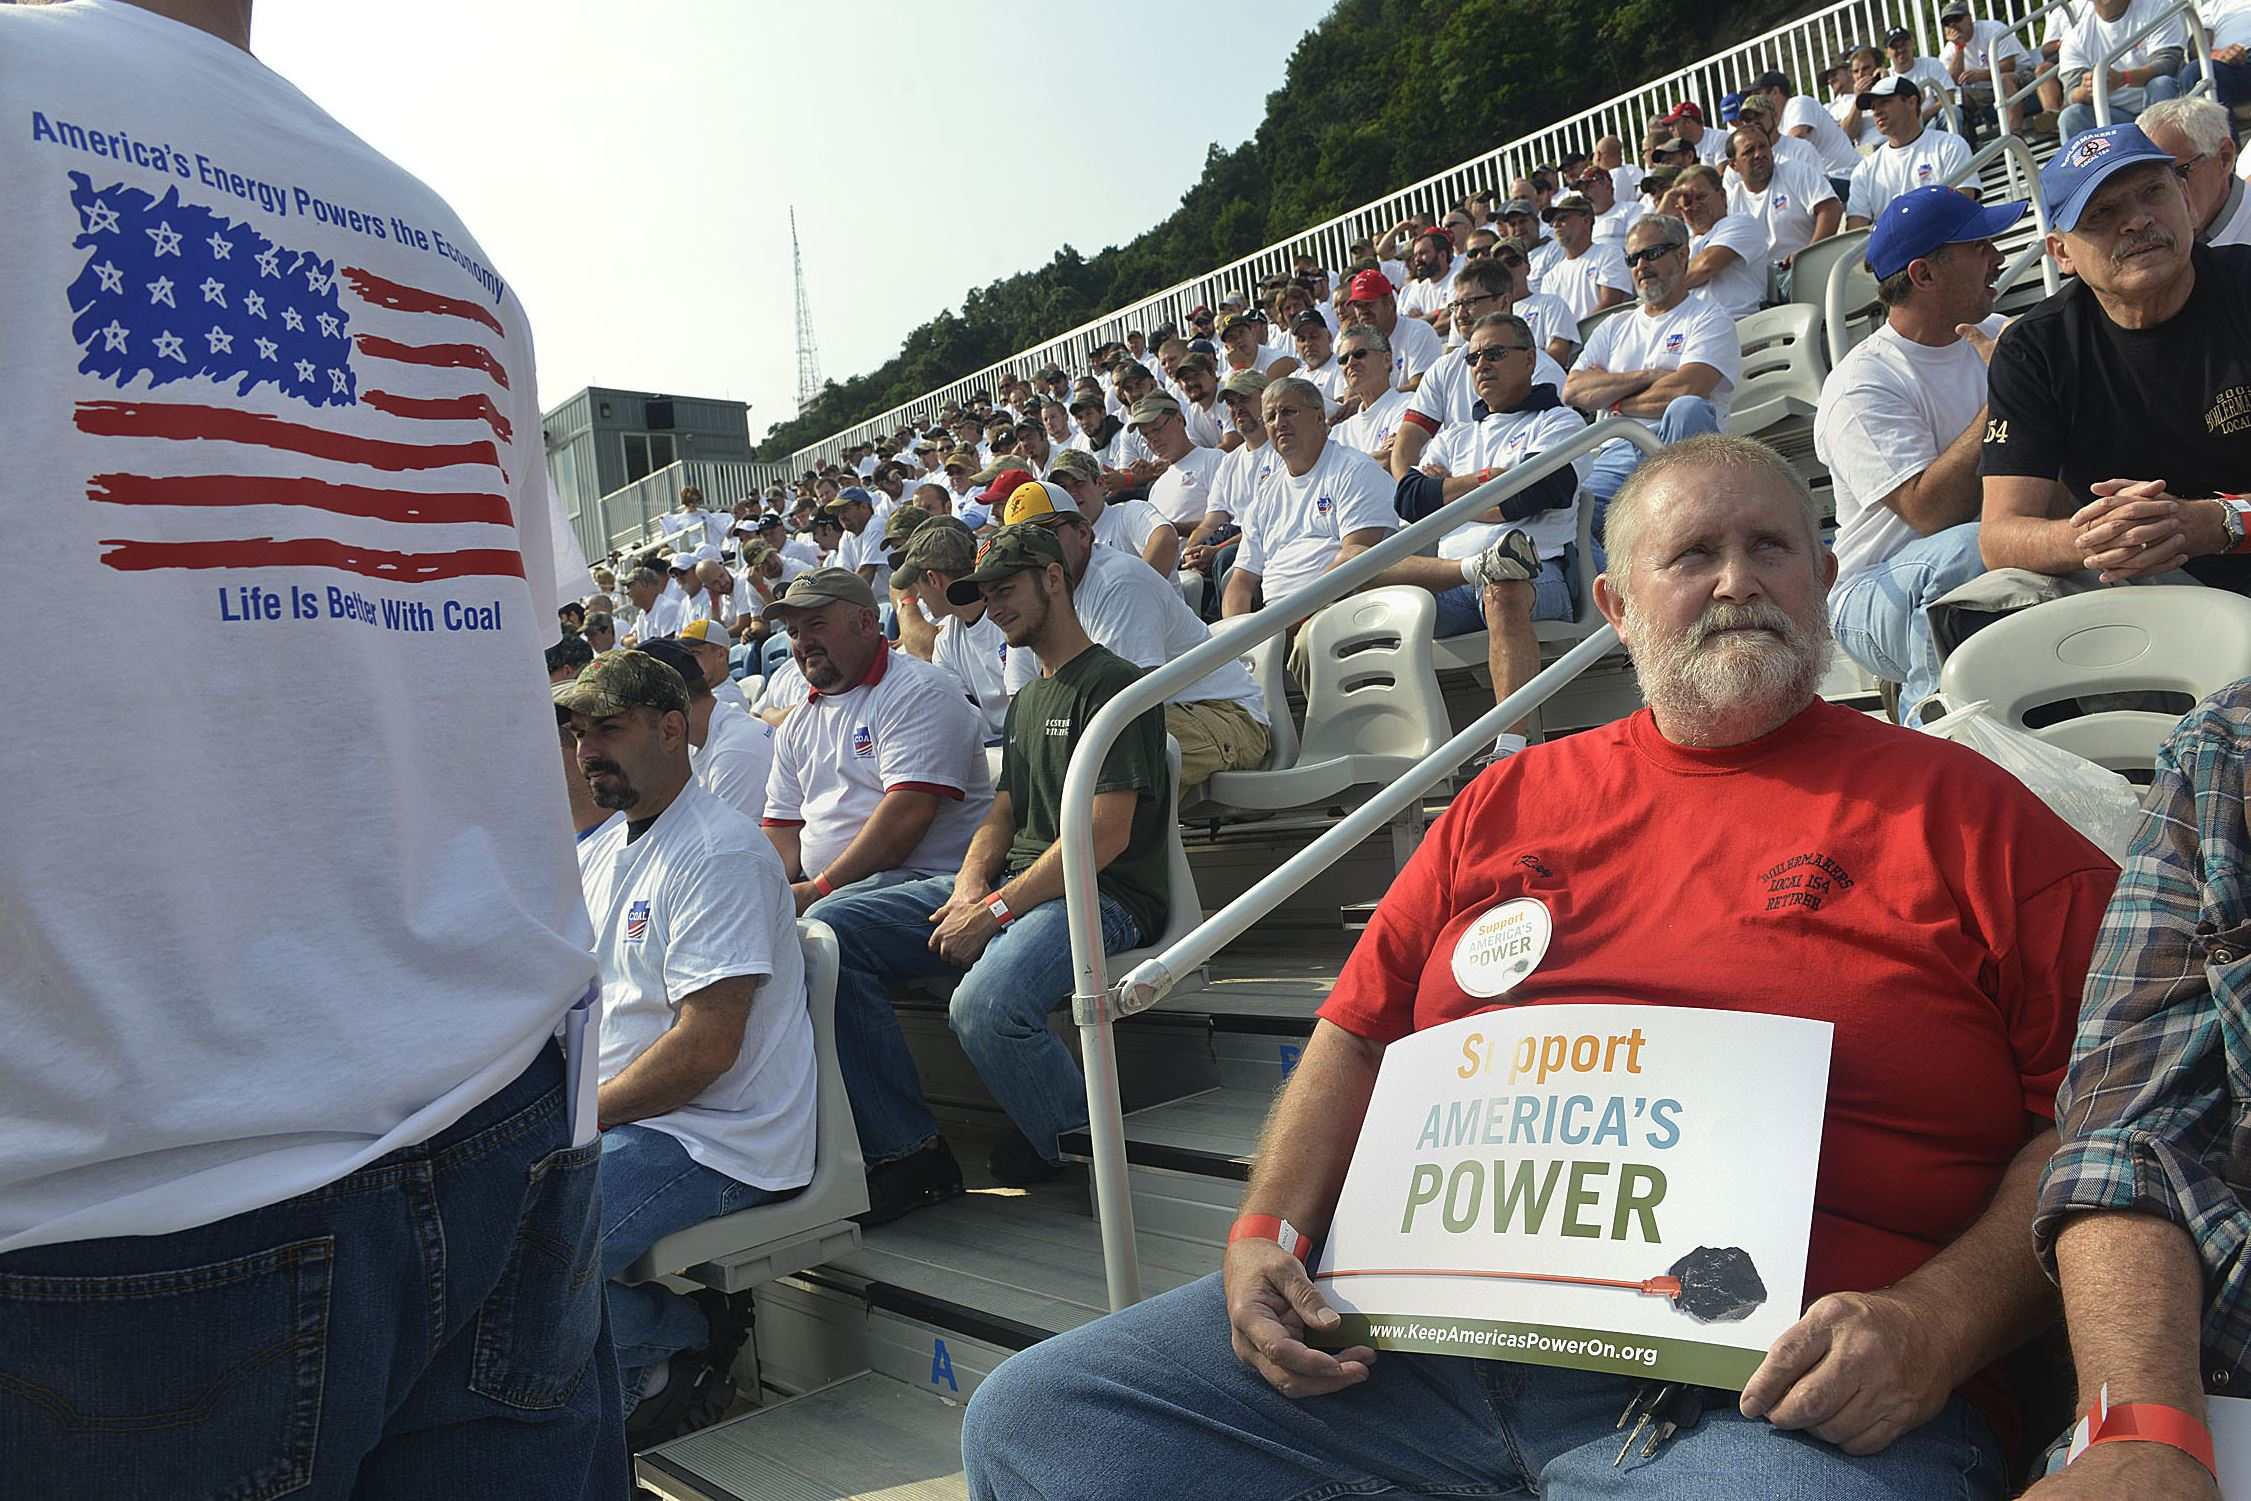 20140730lrcoallocal08-6 Ray Chester, right, a retired boilermaker from Local 154, joins hundreds of people in the stands at Highmark Stadium for a rally in support of American energy and jobs in the coal industry today.